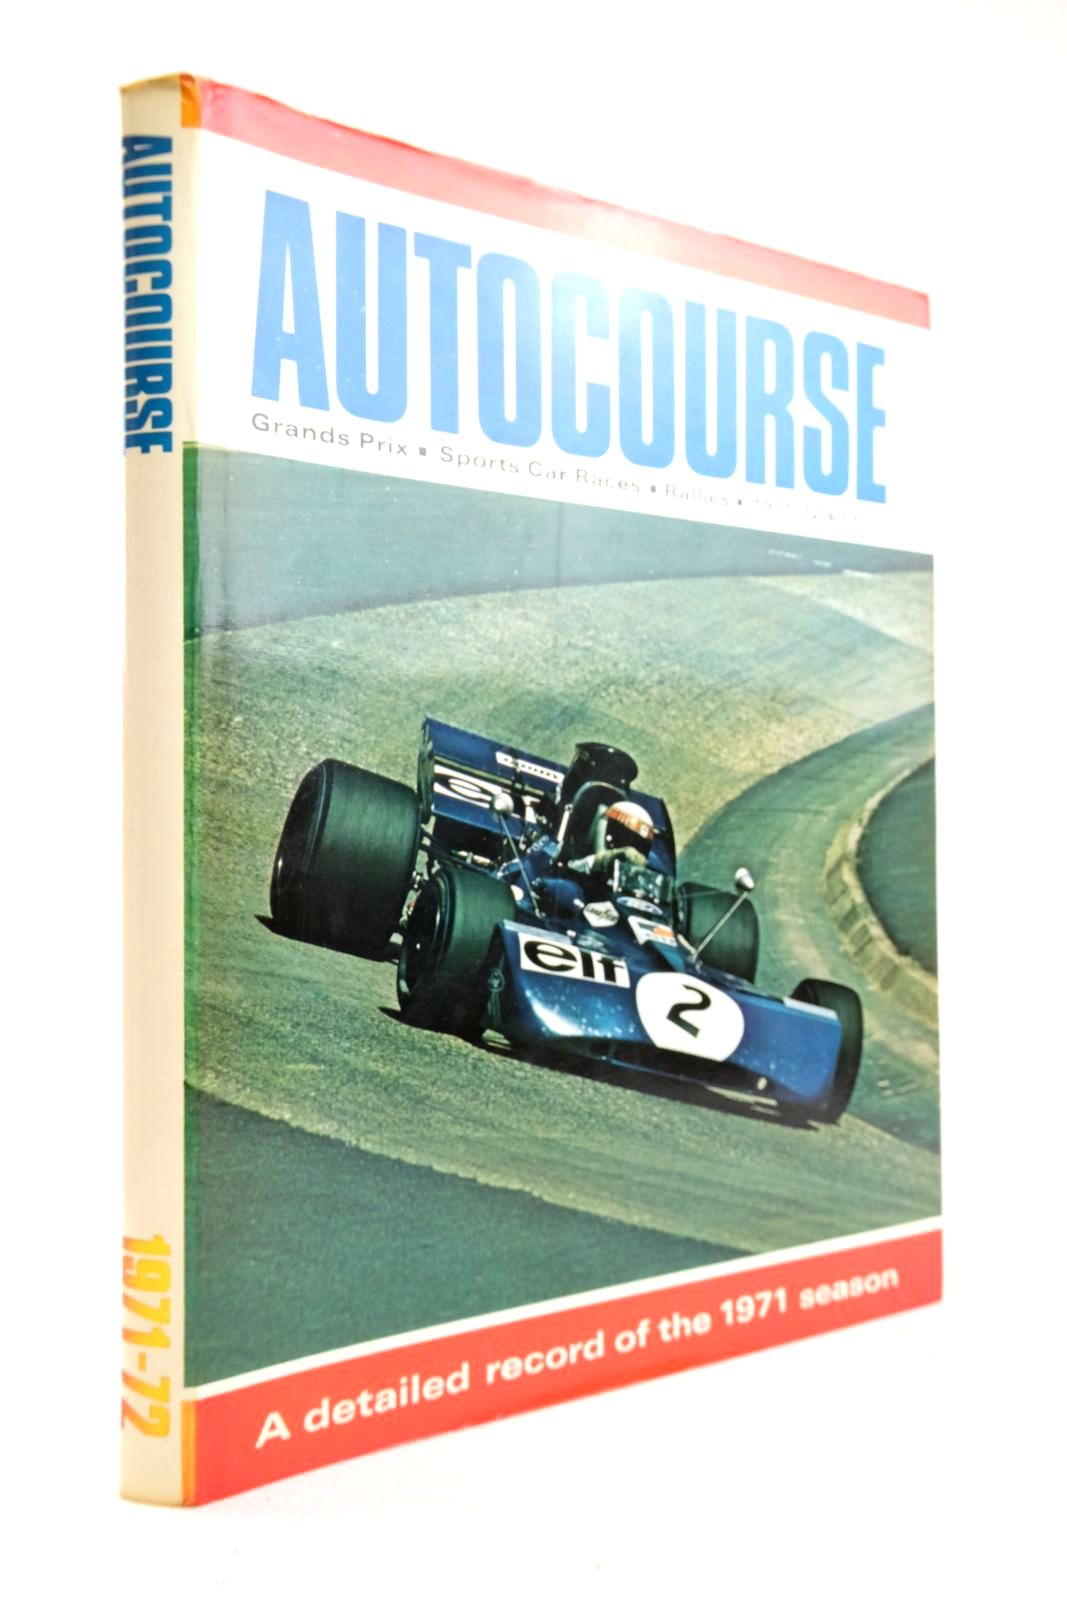 Photo of AUTOCOURSE 1971-72 written by Phipps, David published by Haymarket Publishing Limited (STOCK CODE: 2133351)  for sale by Stella & Rose's Books